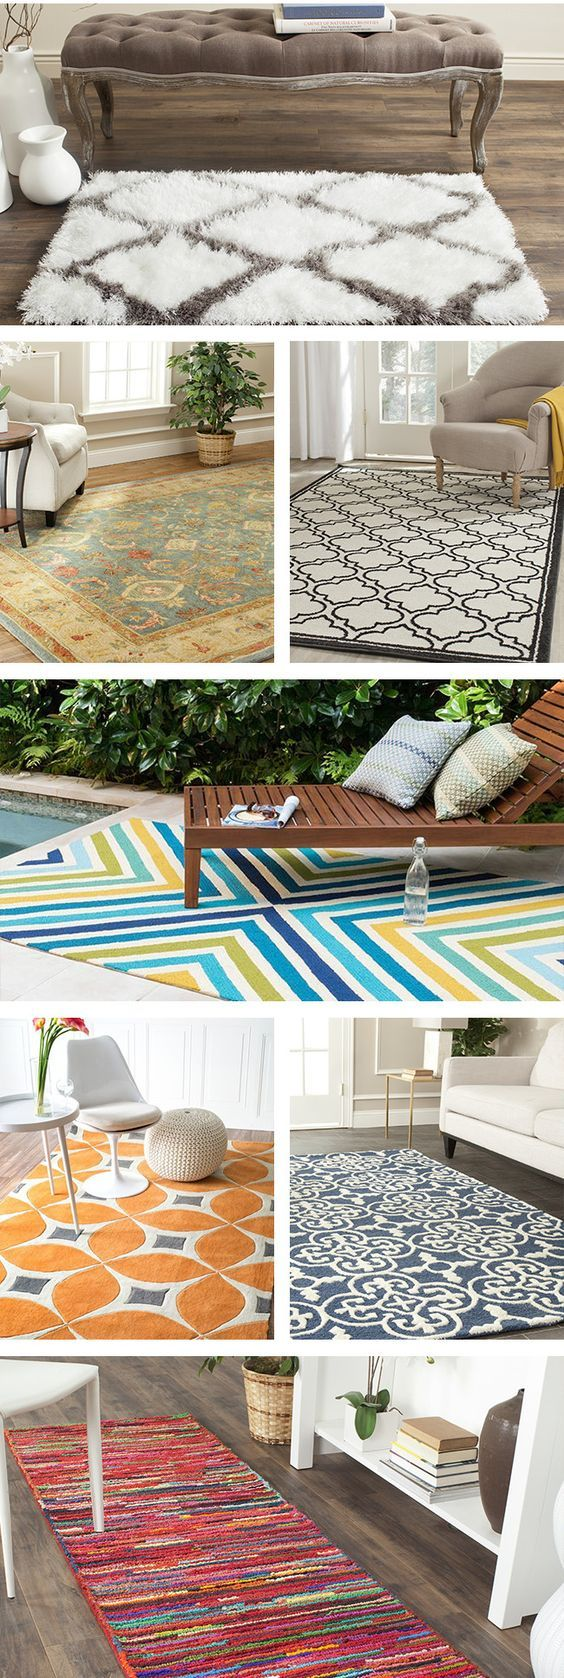 Area rugs, especially those with patterns, help set the tone of a ...